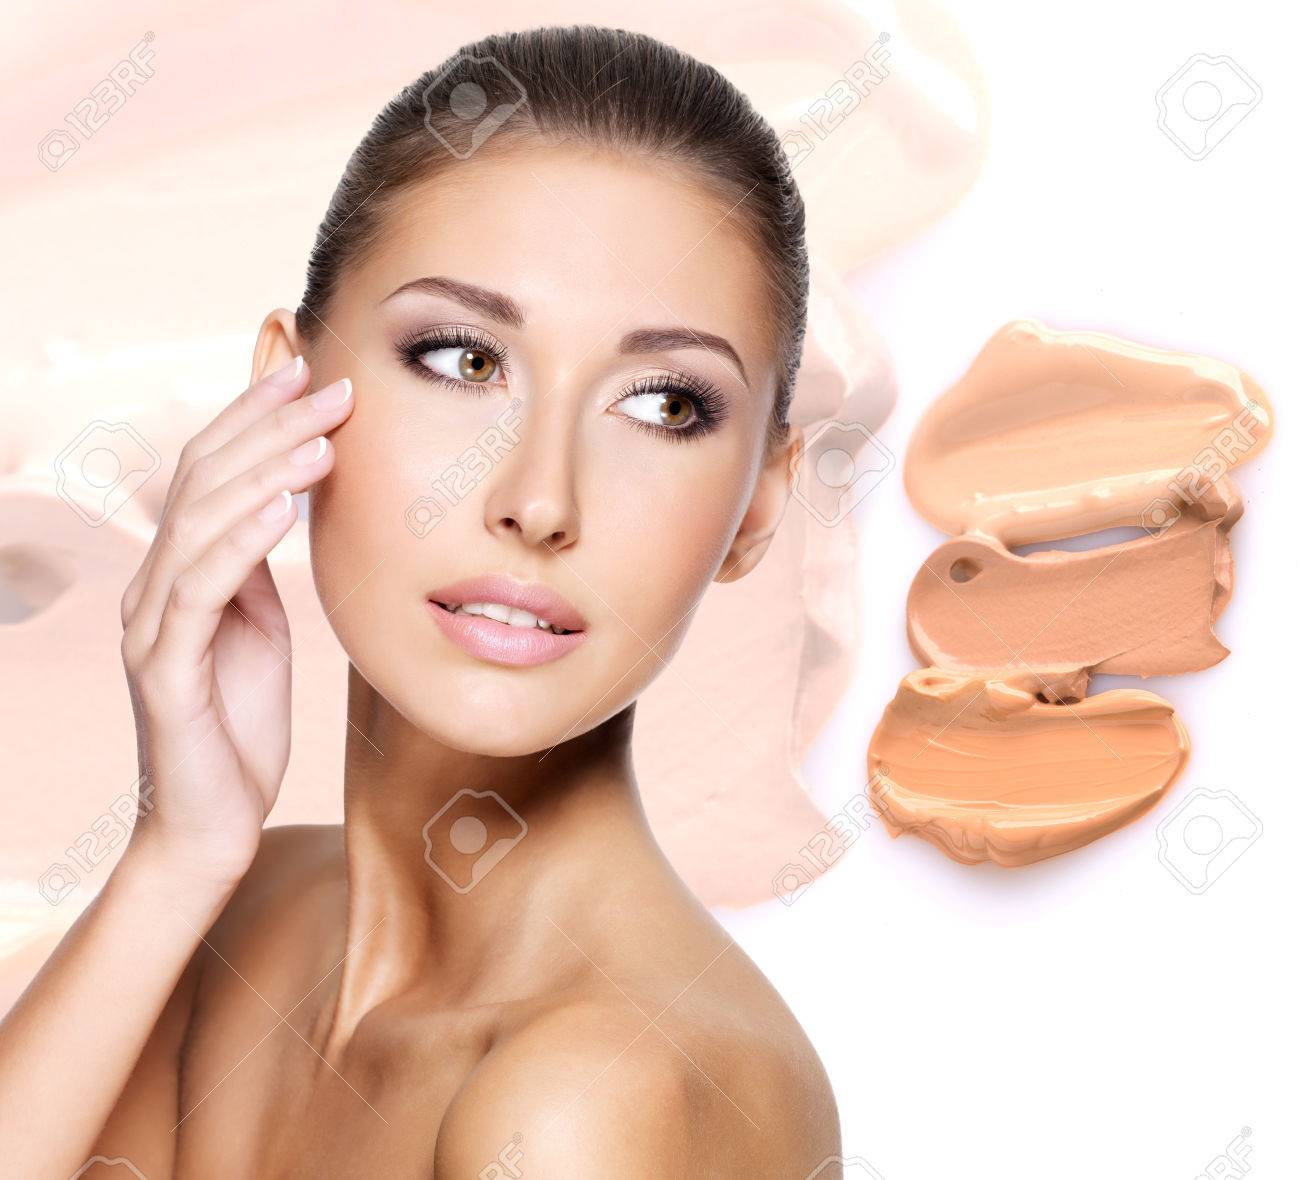 Model face of beautiful woman with foundation on skin make-up cosmetics . Stock Photo - 23271812